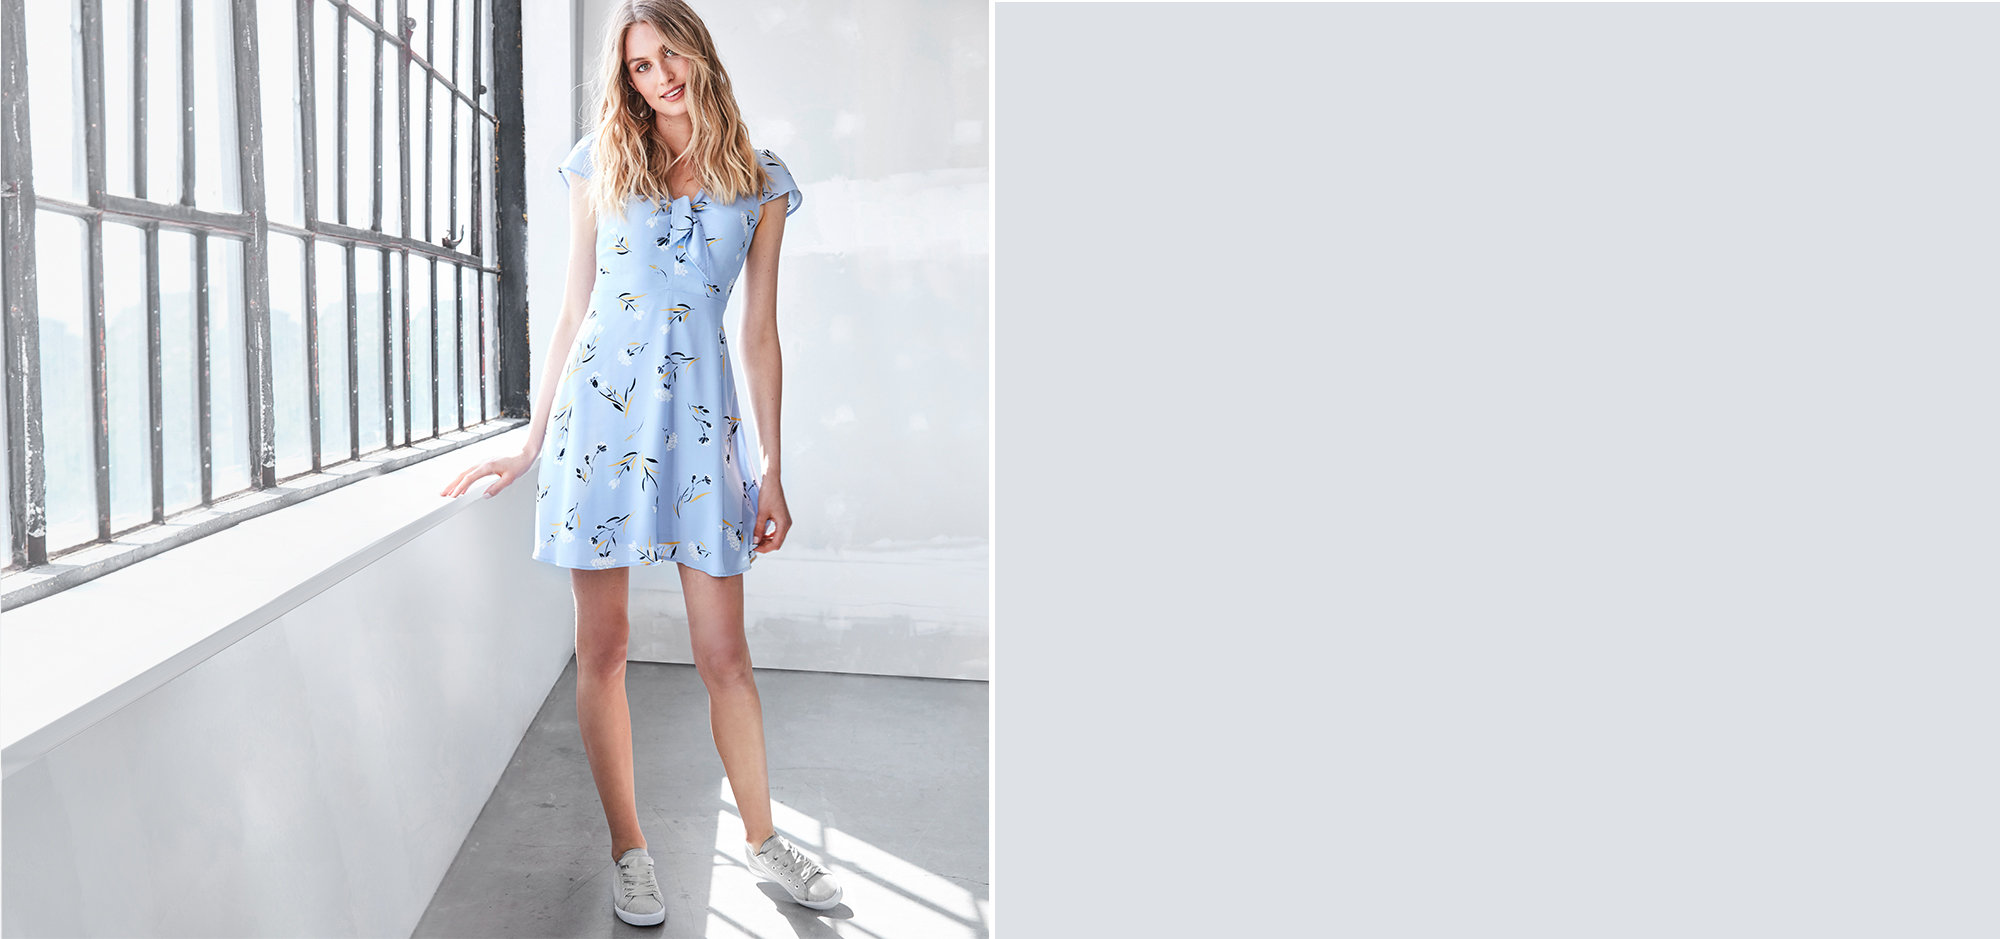 SUMMER DRESSES - Easy, effortless & totally ready for any escape.